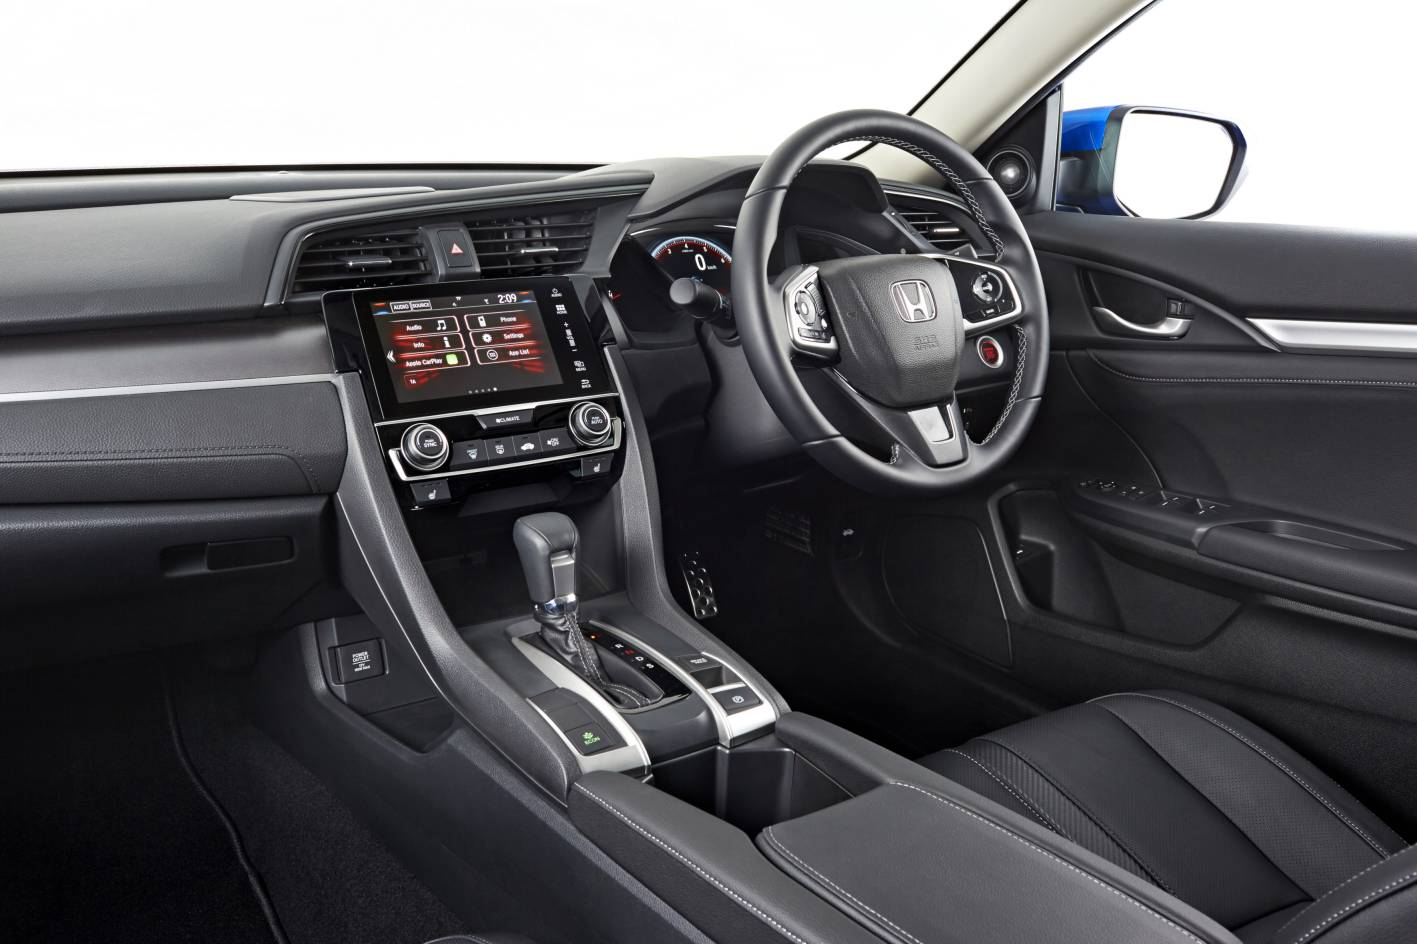 honda civic si interior 2016 honda civic interior 2016 honda civic ...